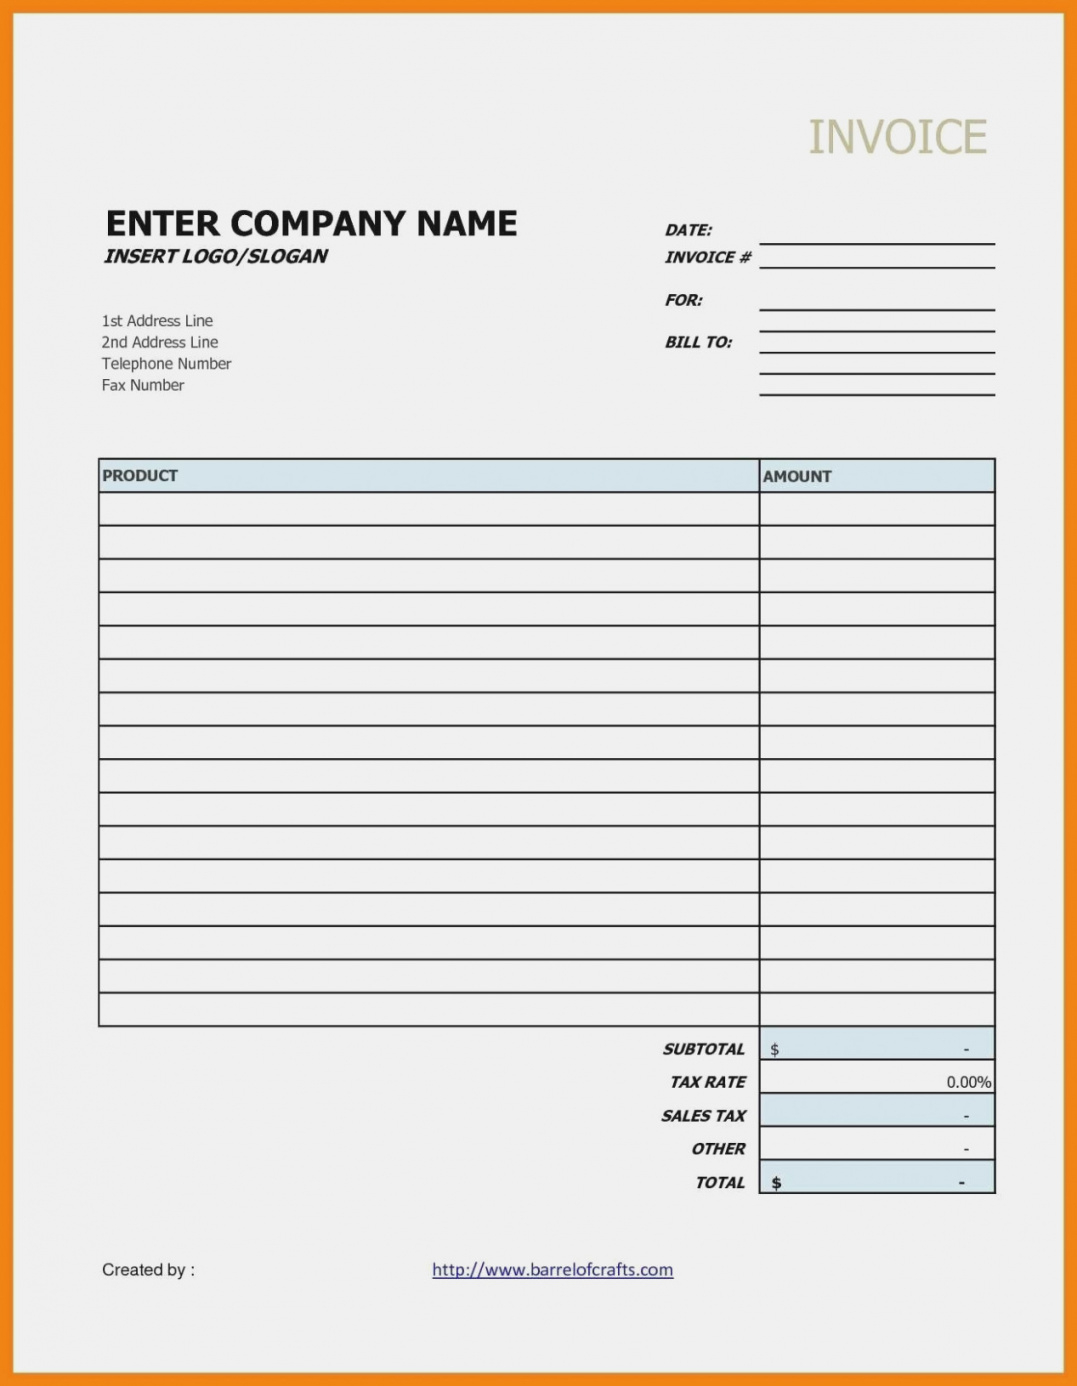 Contractor Invoice Template Google Docs Filename – Elsik Blue Cetane Consulting Invoice Template Google Docs